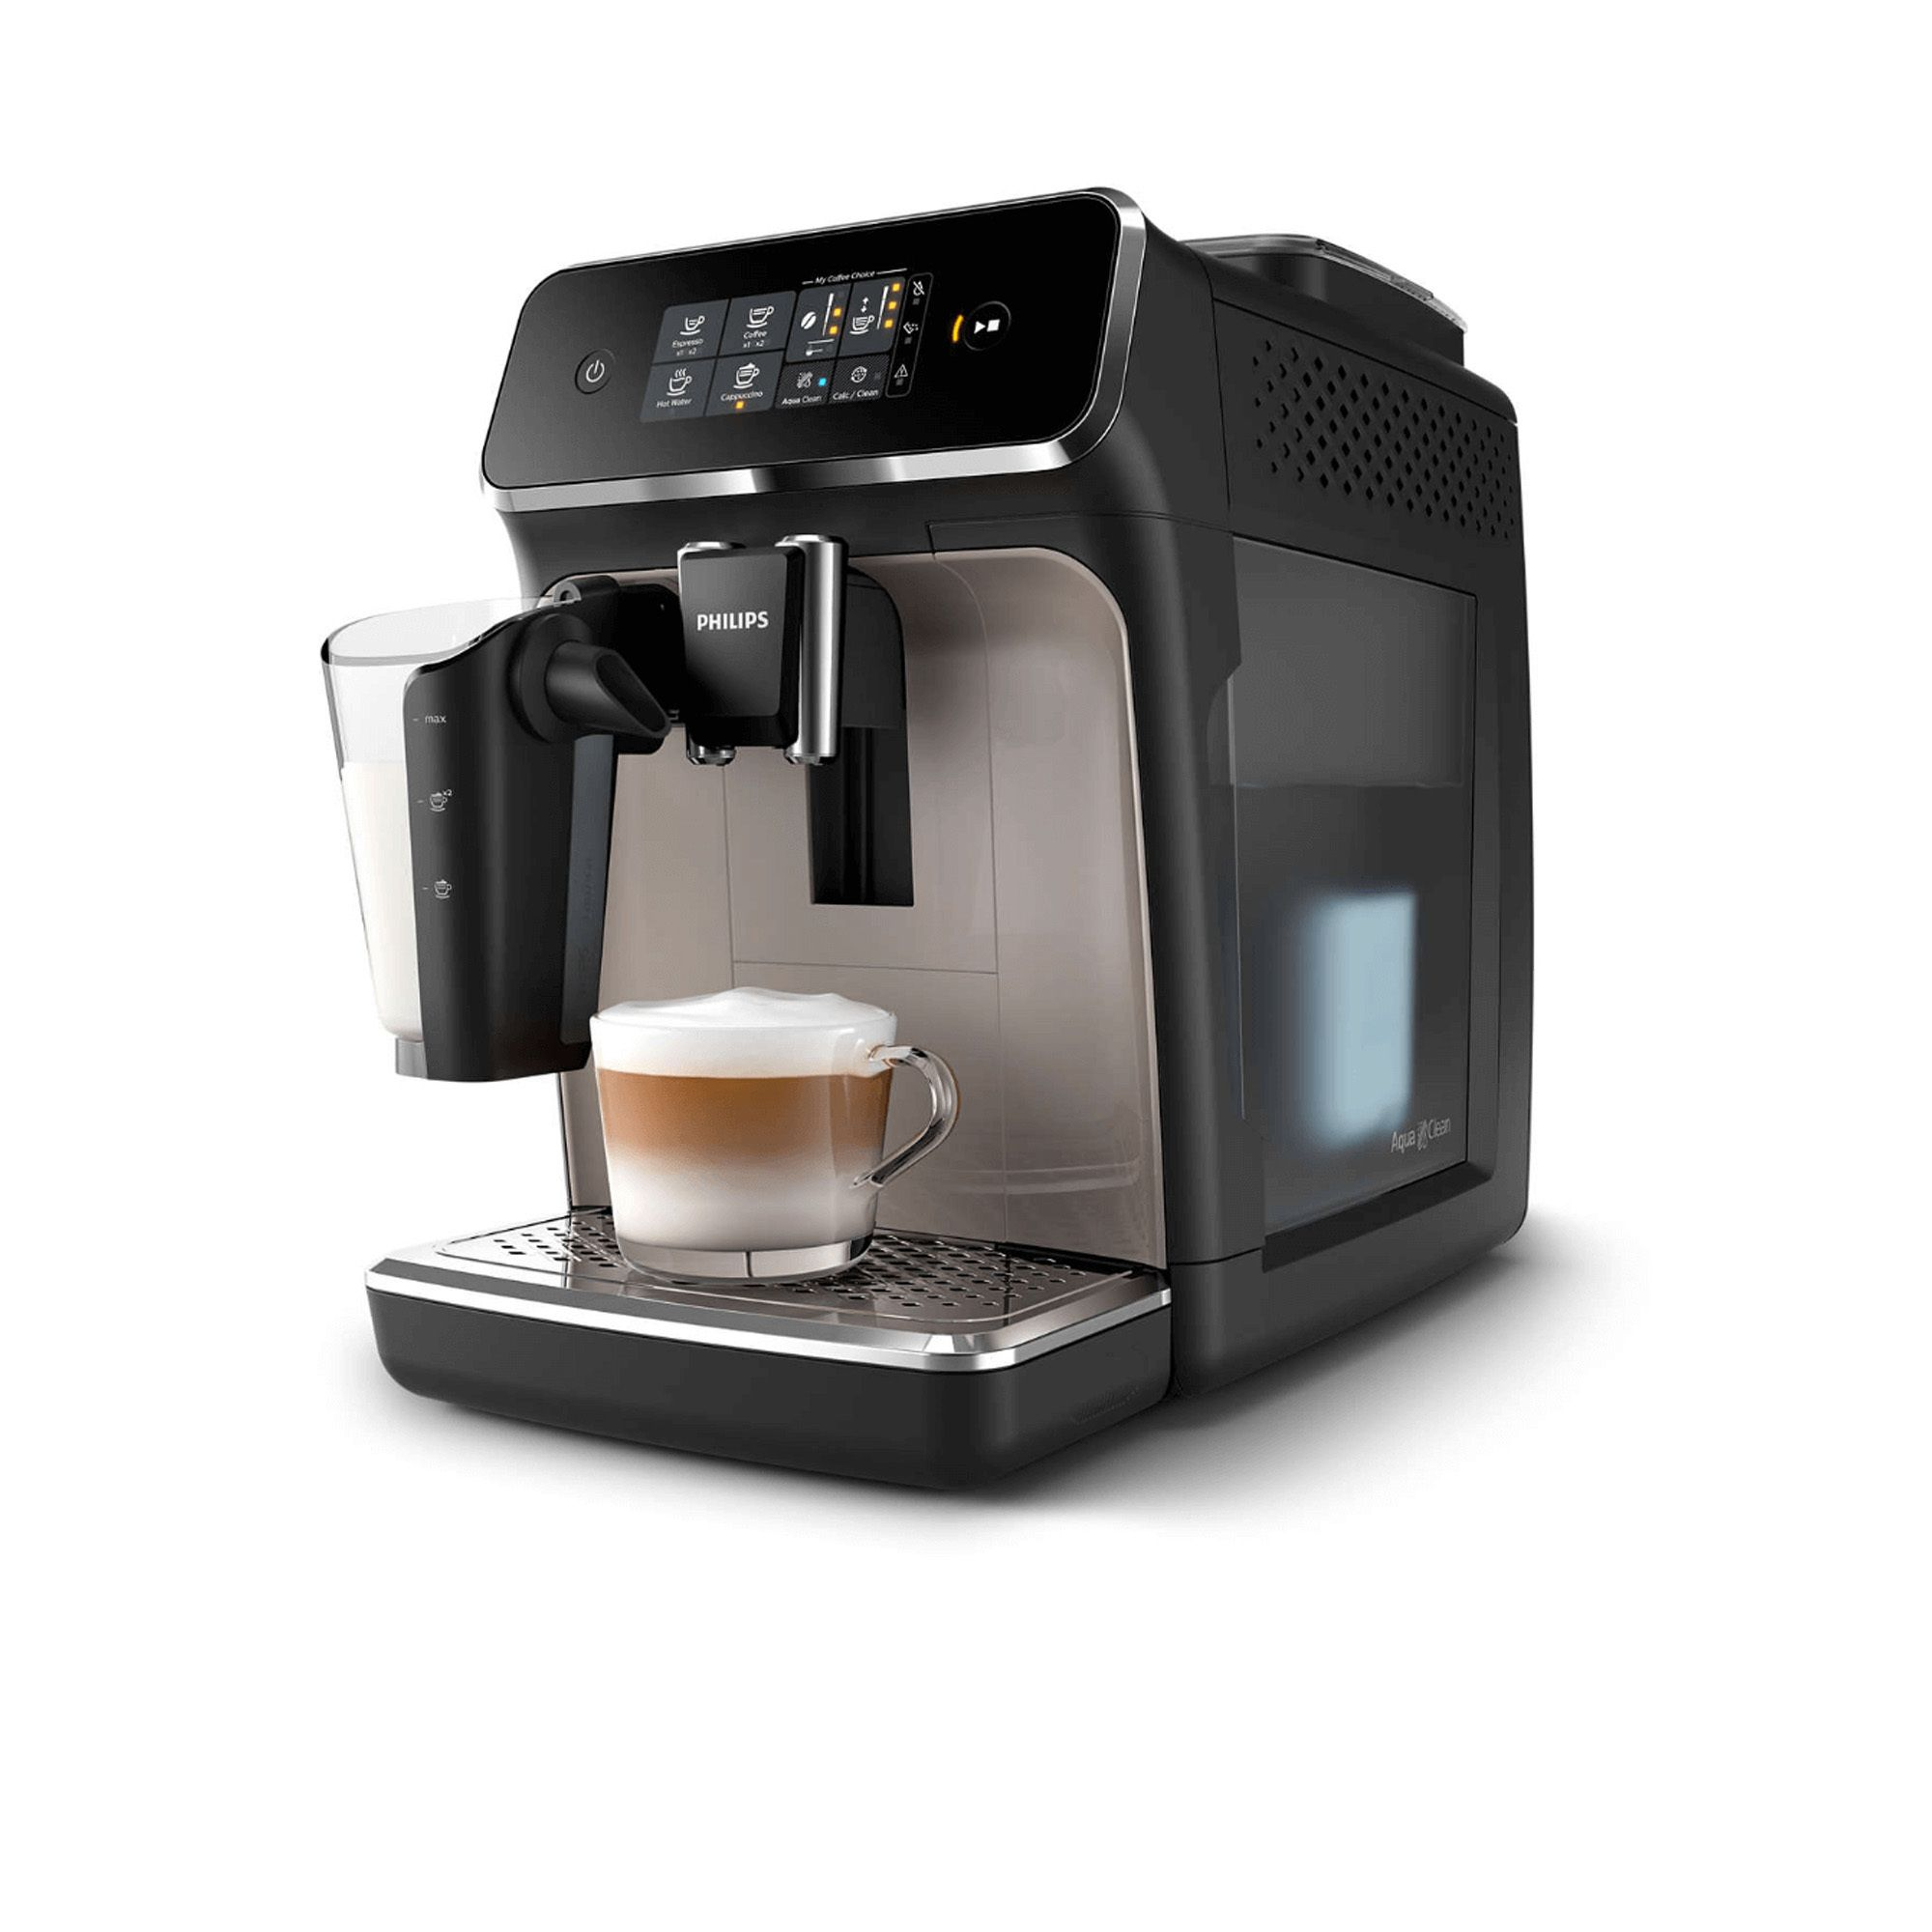 Image of 2200 LatteGo Macchina caffè digitale